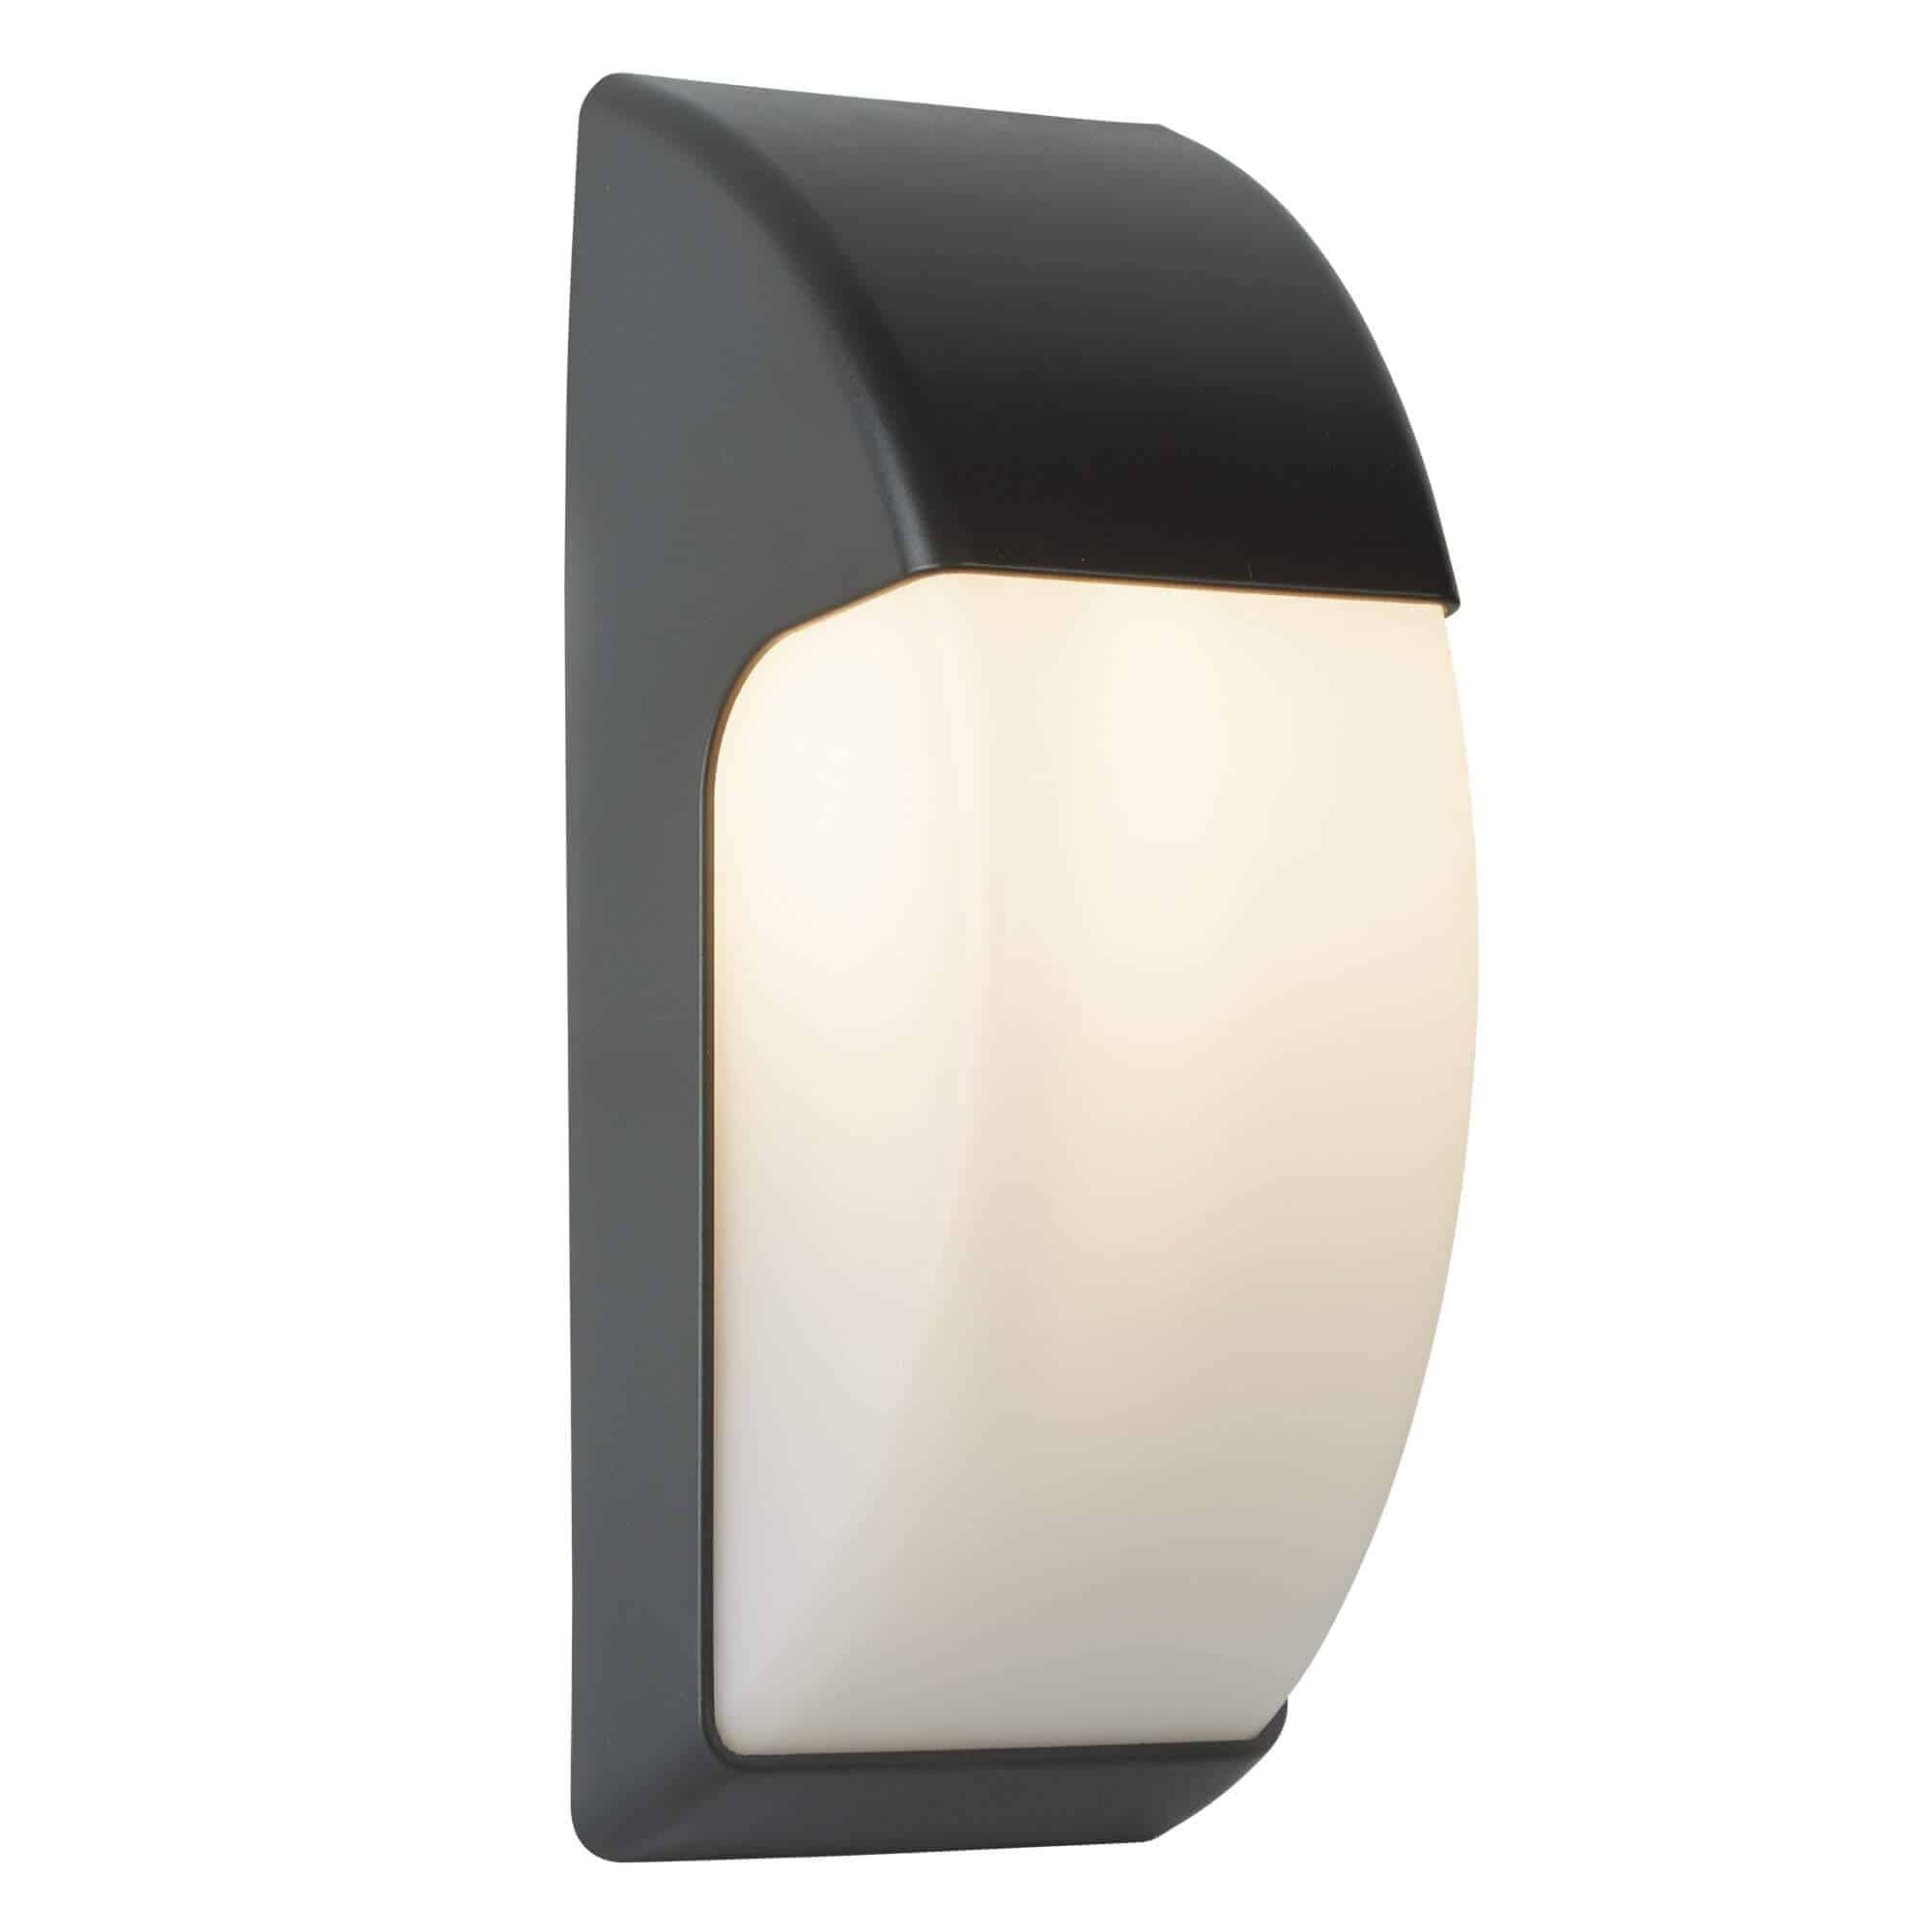 3231GY – Searchlight LED Outdoor Dark Grey 1 Light Crescent Wall Light